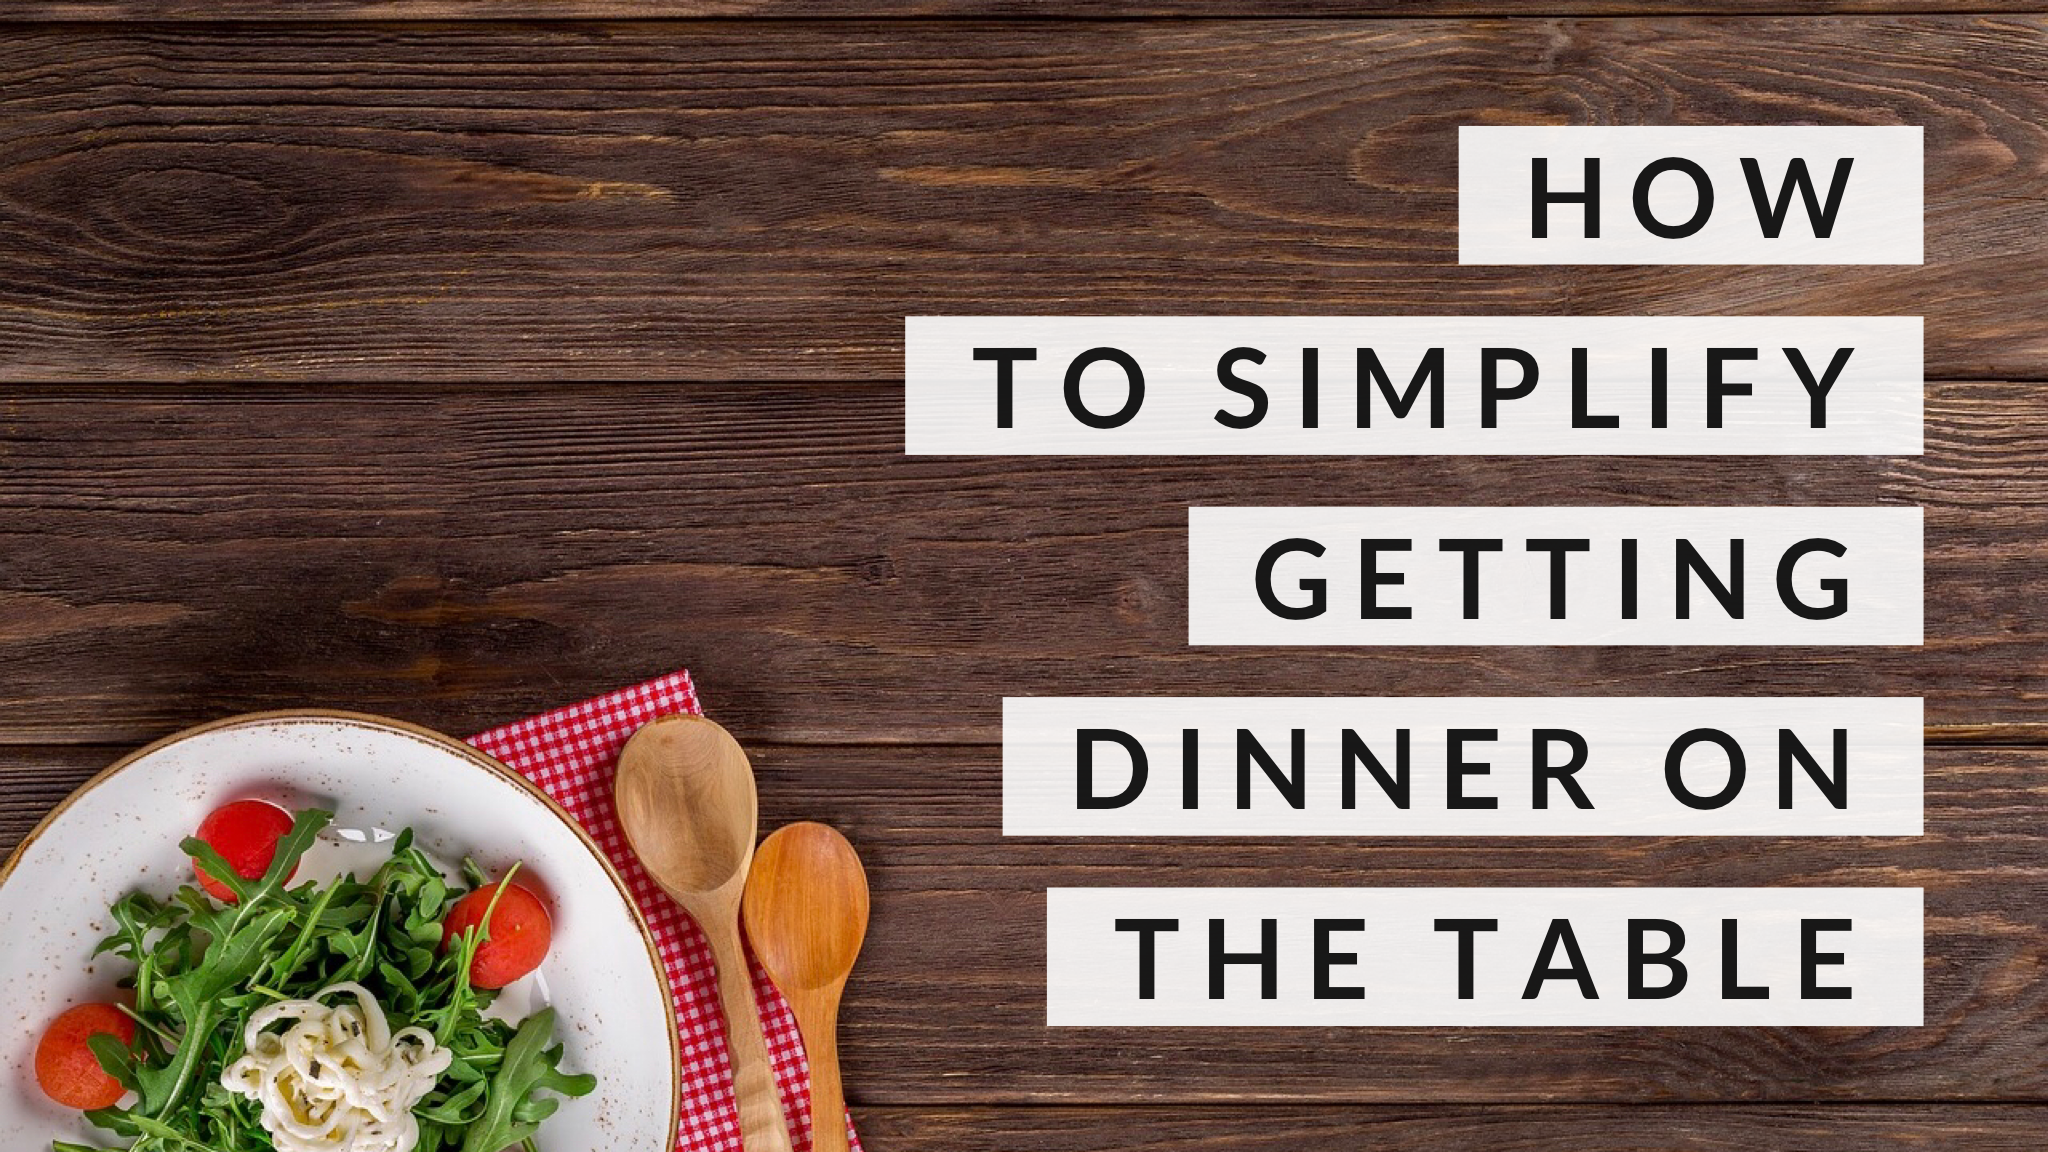 How to simplify getting dinner on the table - four tips to take the drama out of cooking for your family